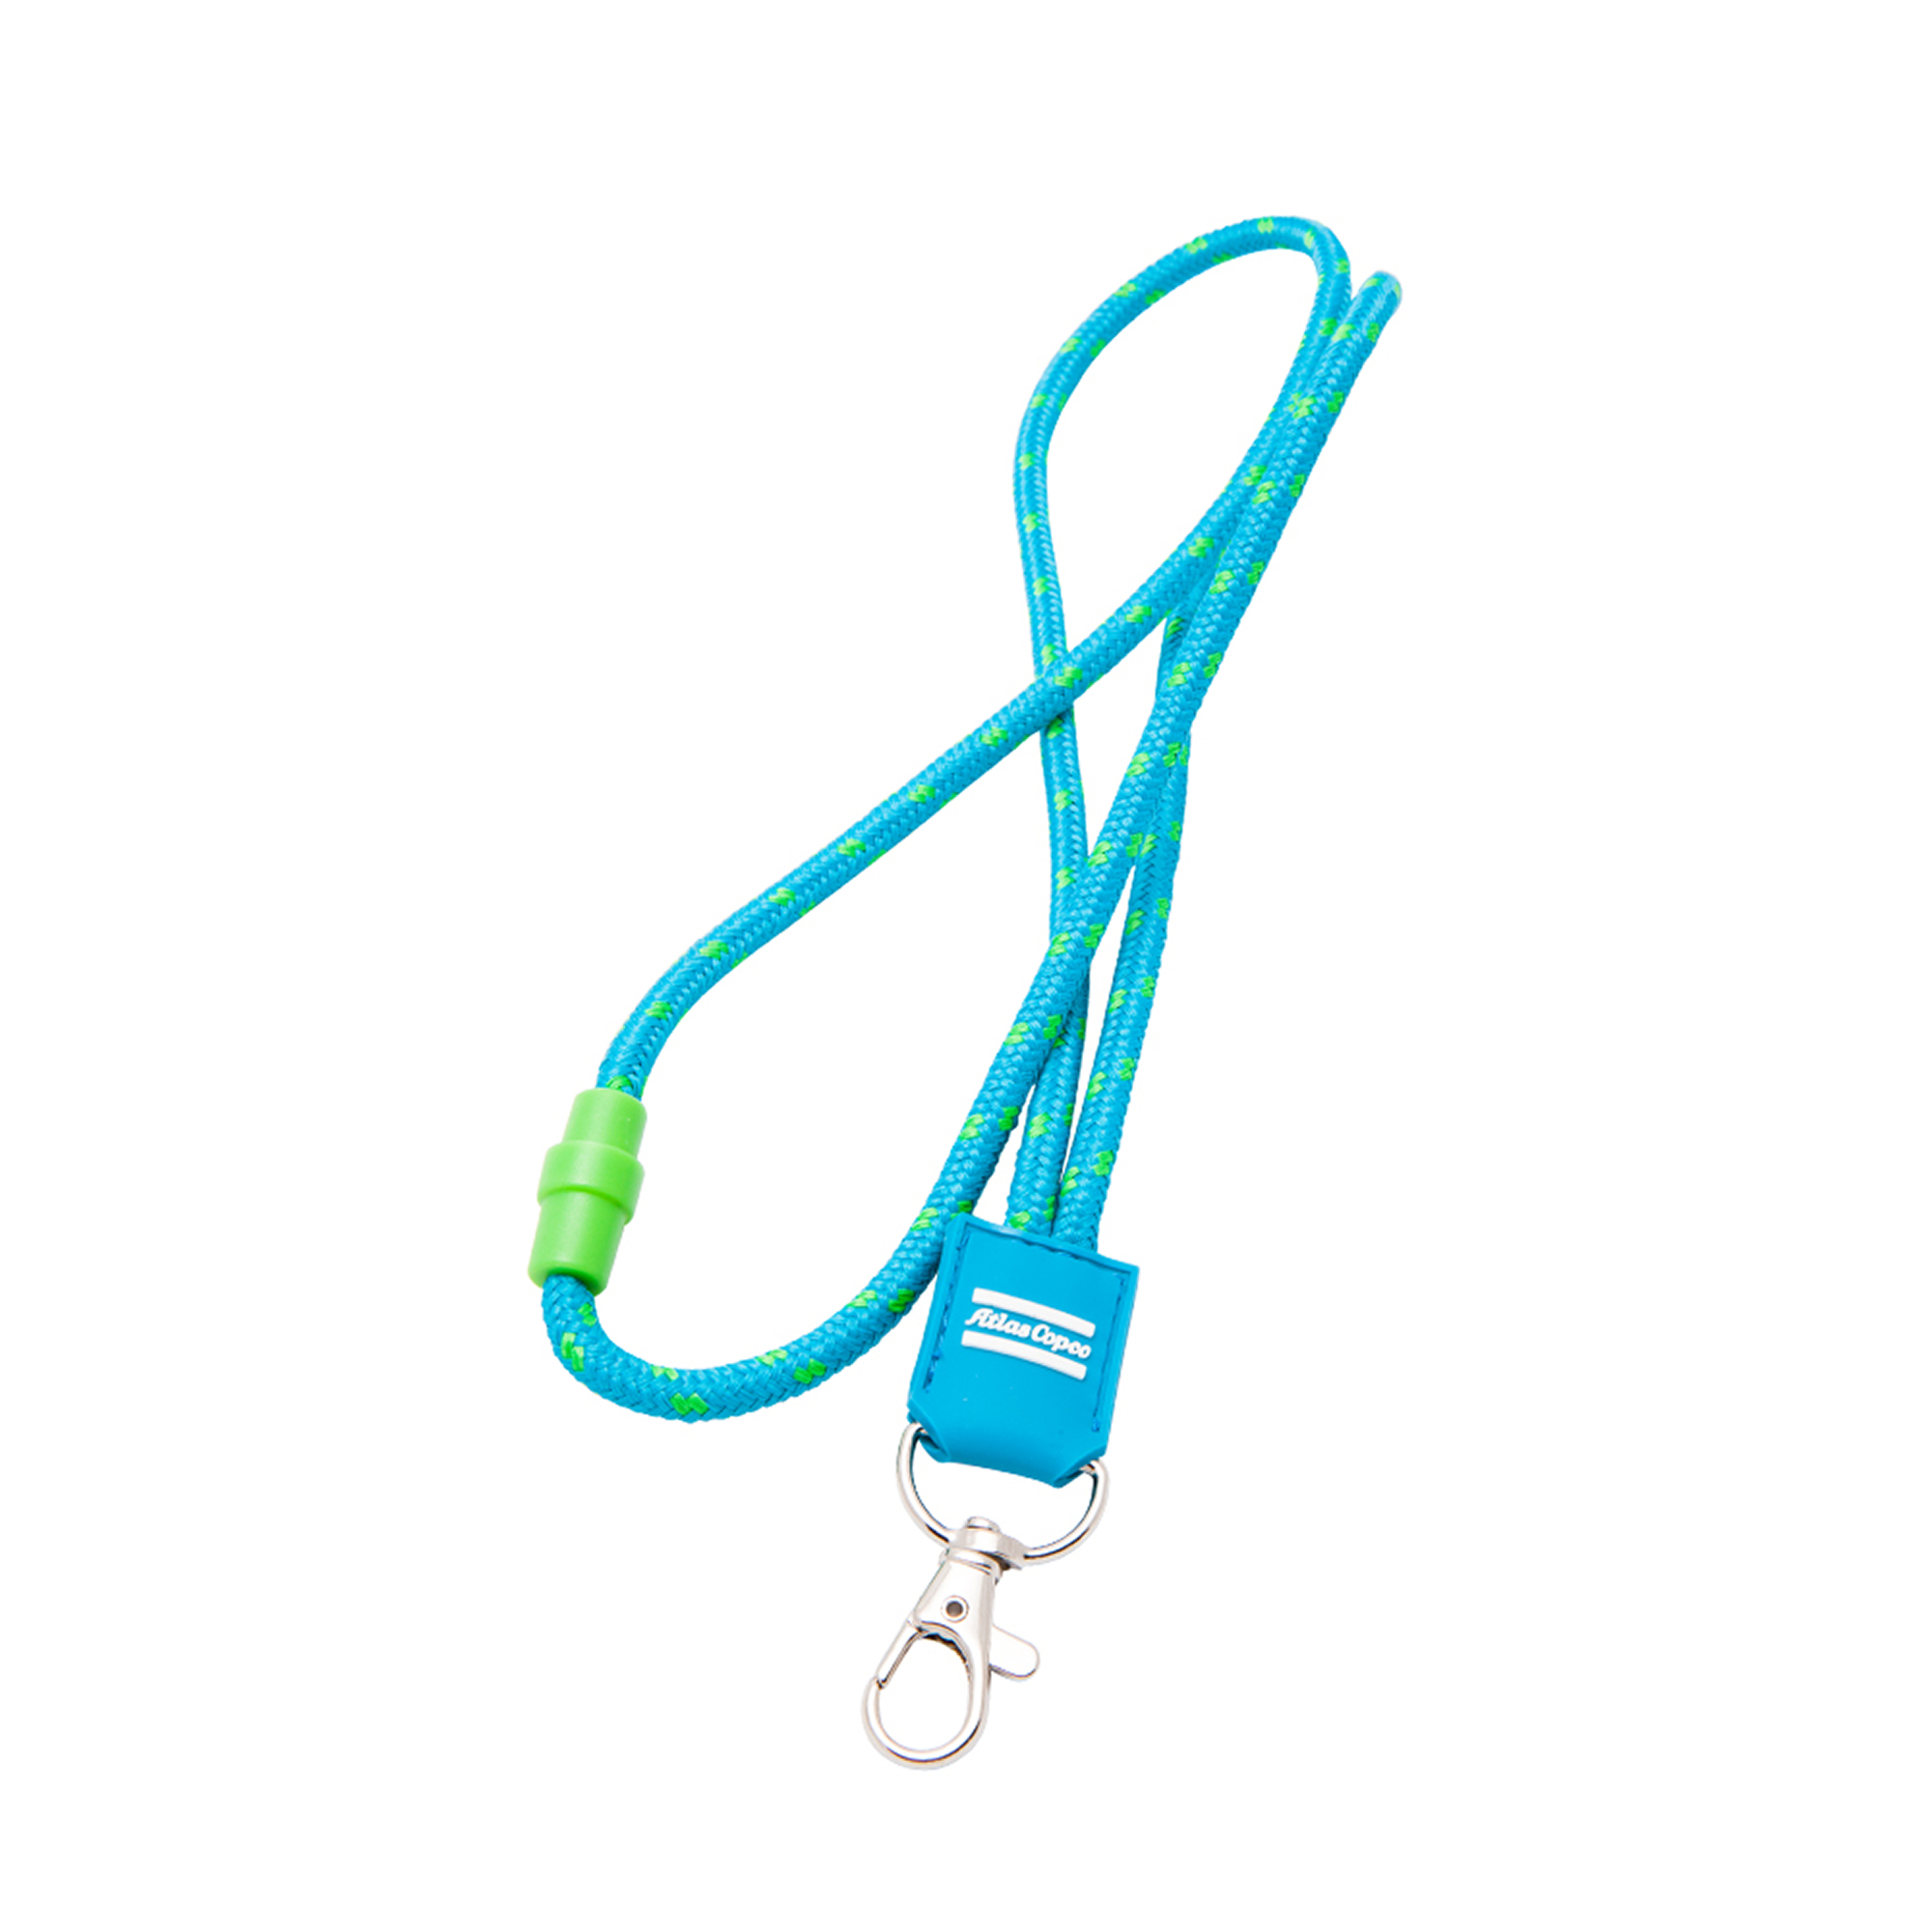 The lanyard string is made from recycled polyester and it is equipped with an effective safety clip. An Atlas Copco logotype is embossed in PVC safe rubber and the lanyard is completed with a metal carbine hook.